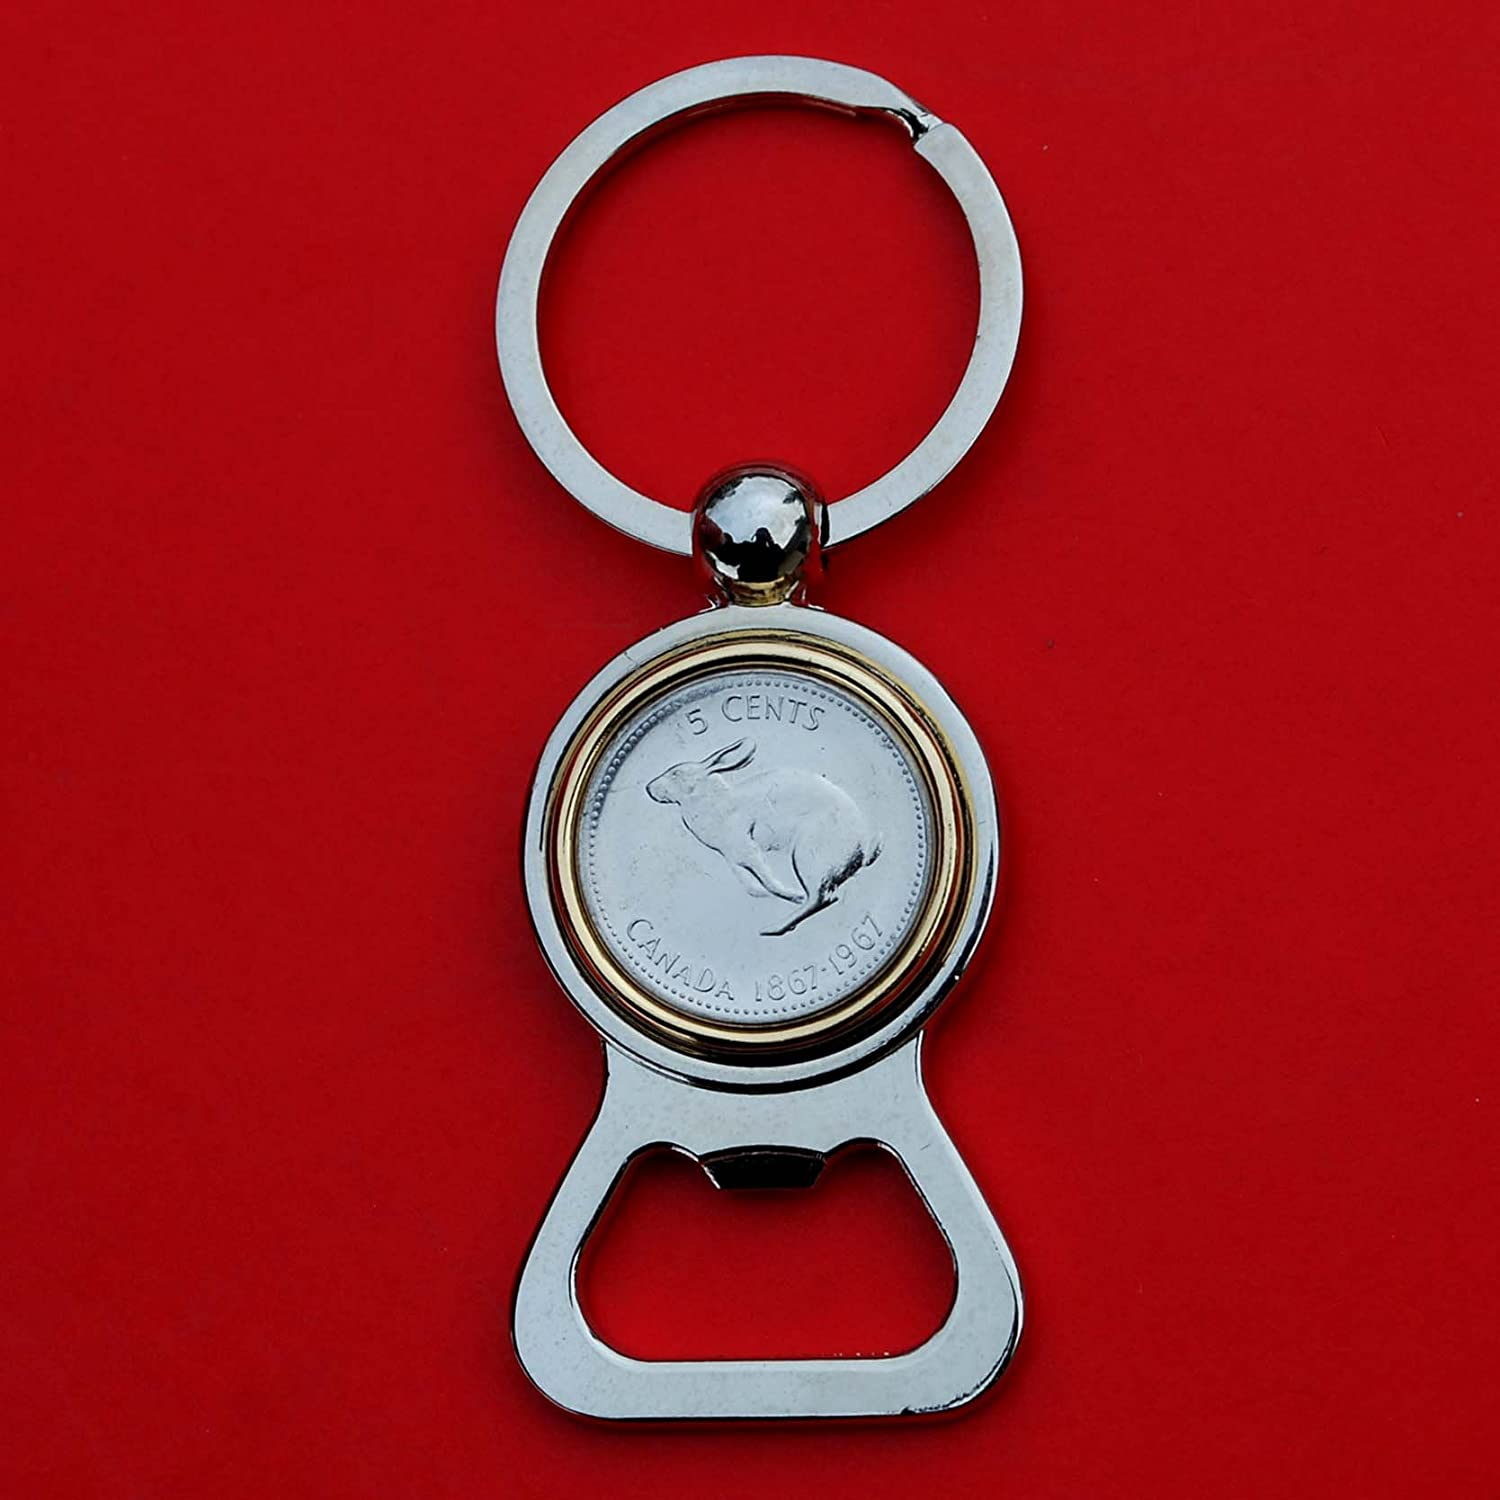 Canada 1967 Five Cents Gem BU Uncirculated Nickel Coin Gold Silver Two Tone Key Chain Ring Bottle Opener - Bounding Snowshoe Rabbit